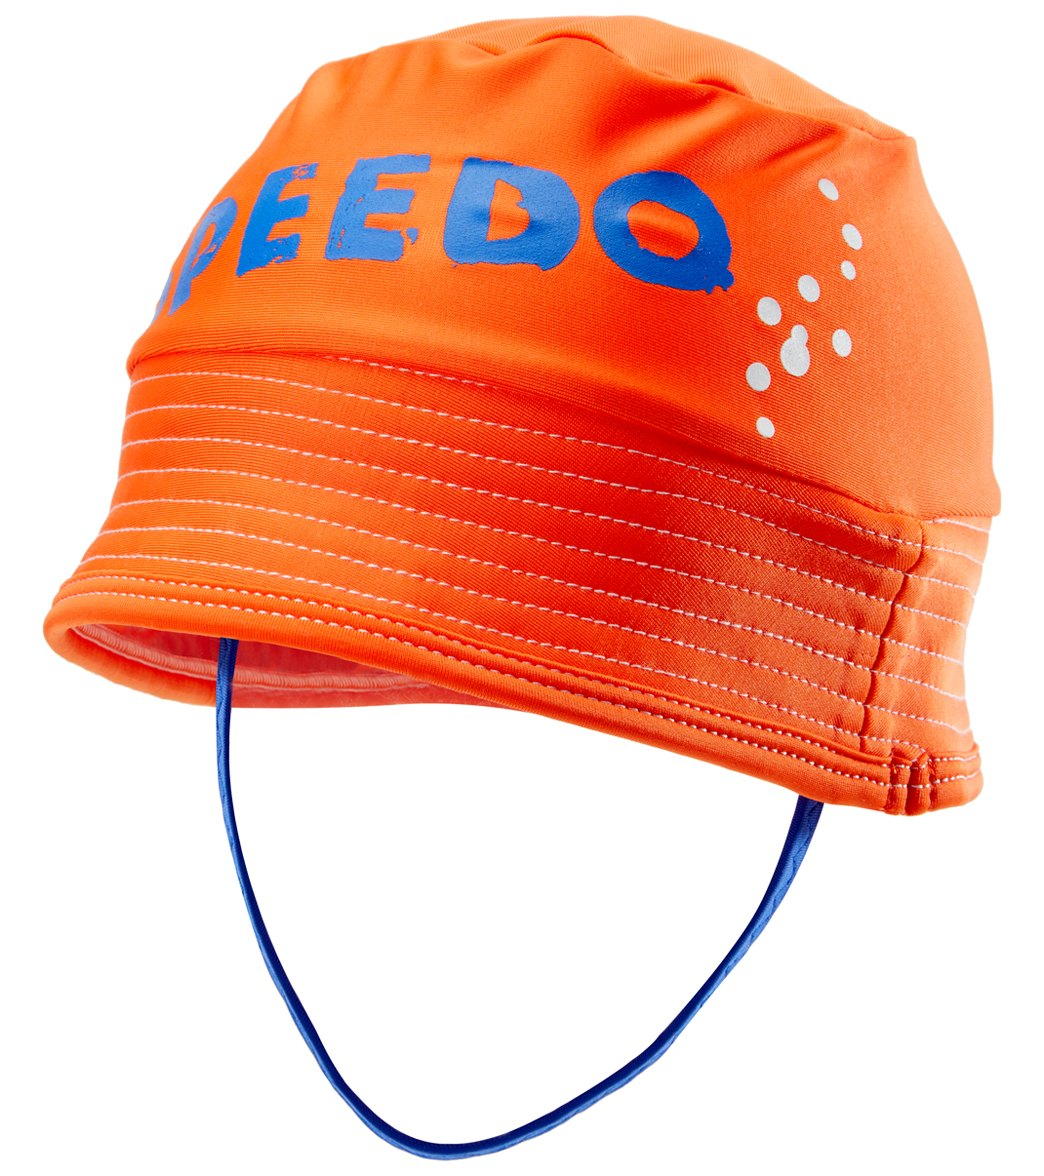 8c2184e5c68 Speedo Boys  UV Bucket Hat (Infant-3yrs) at SwimOutlet.com